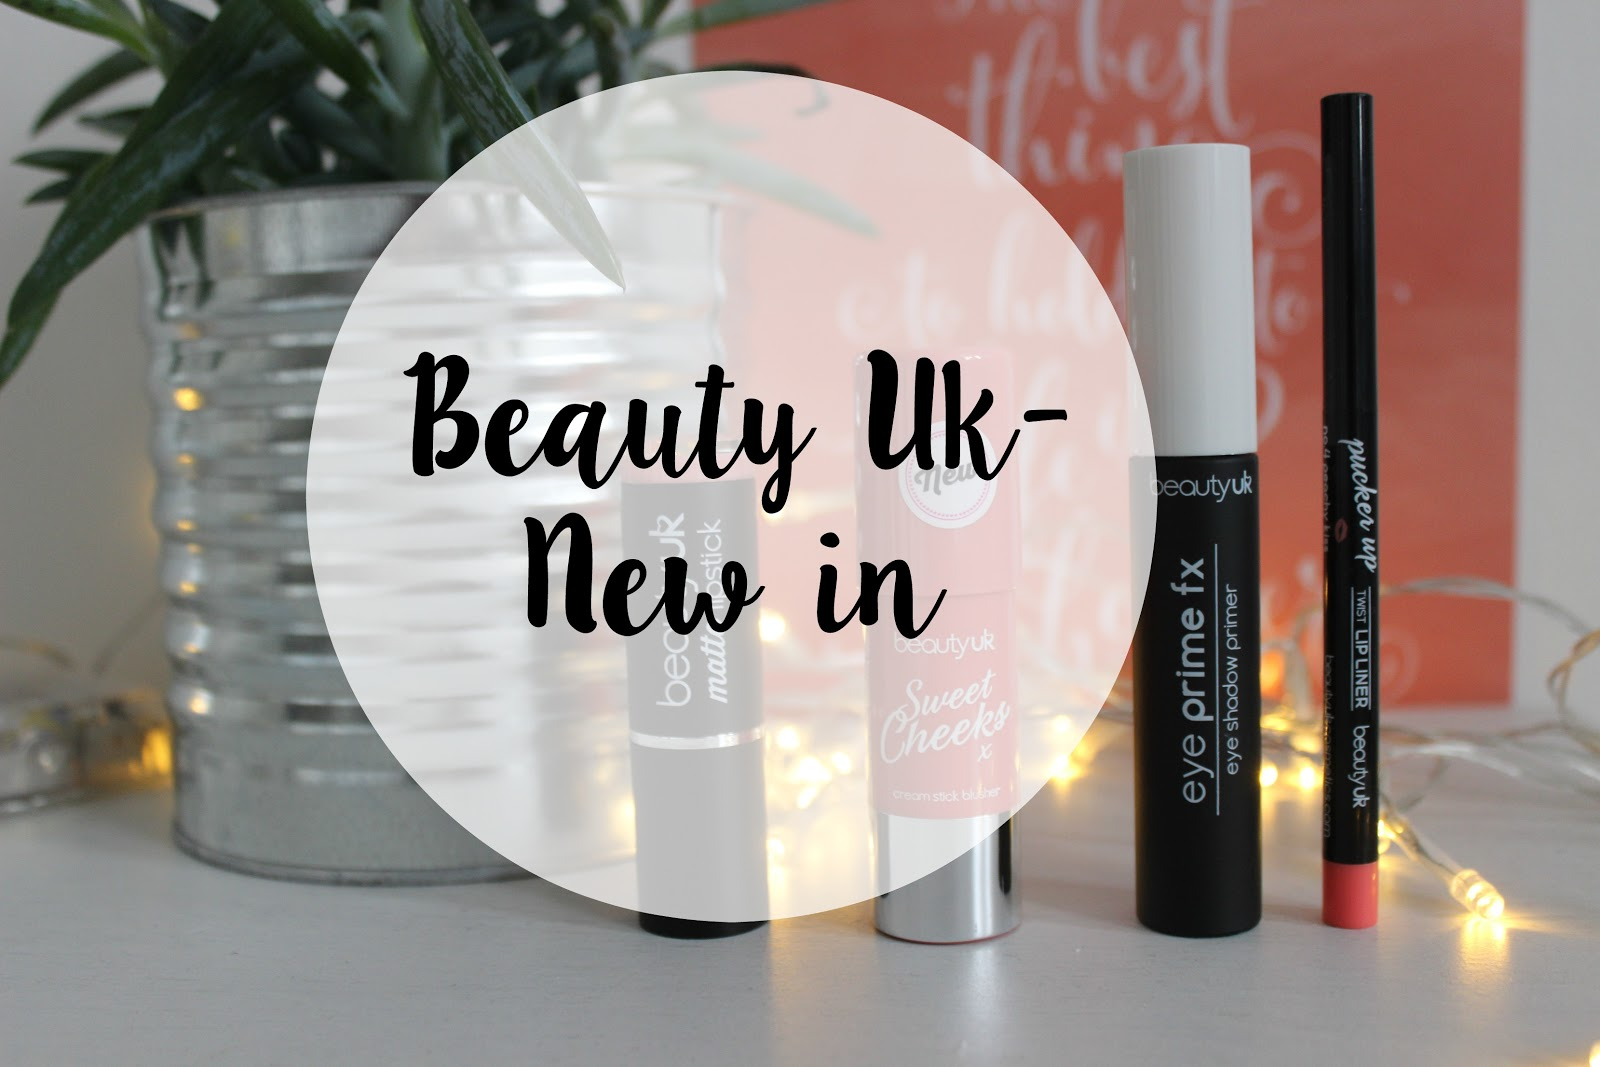 beauty, sweet cheeks chubby stick, lipliner peachy kiss, baked blush halo, matte lipstick son of a peach, beauty uk